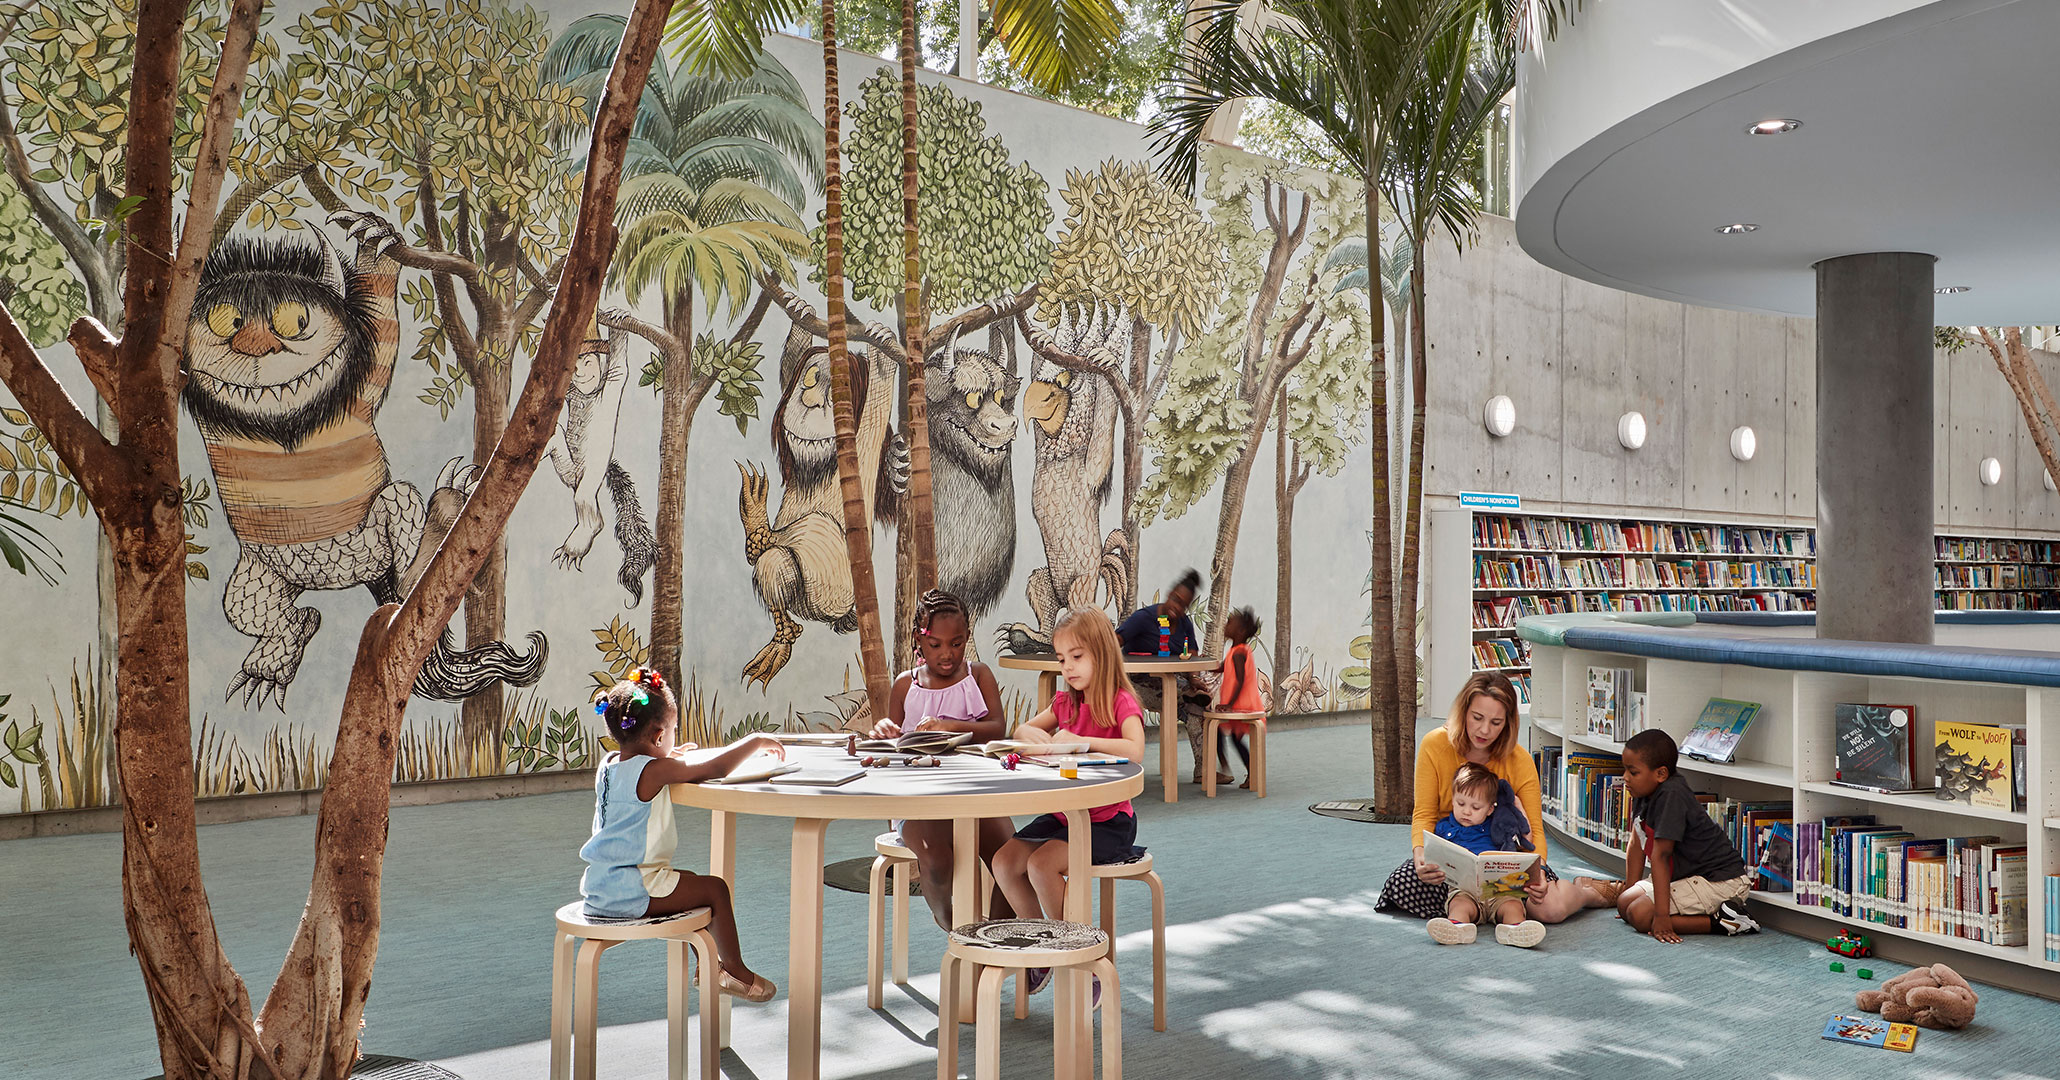 Boudreaux designed children's educational center and modern engaging spaces.